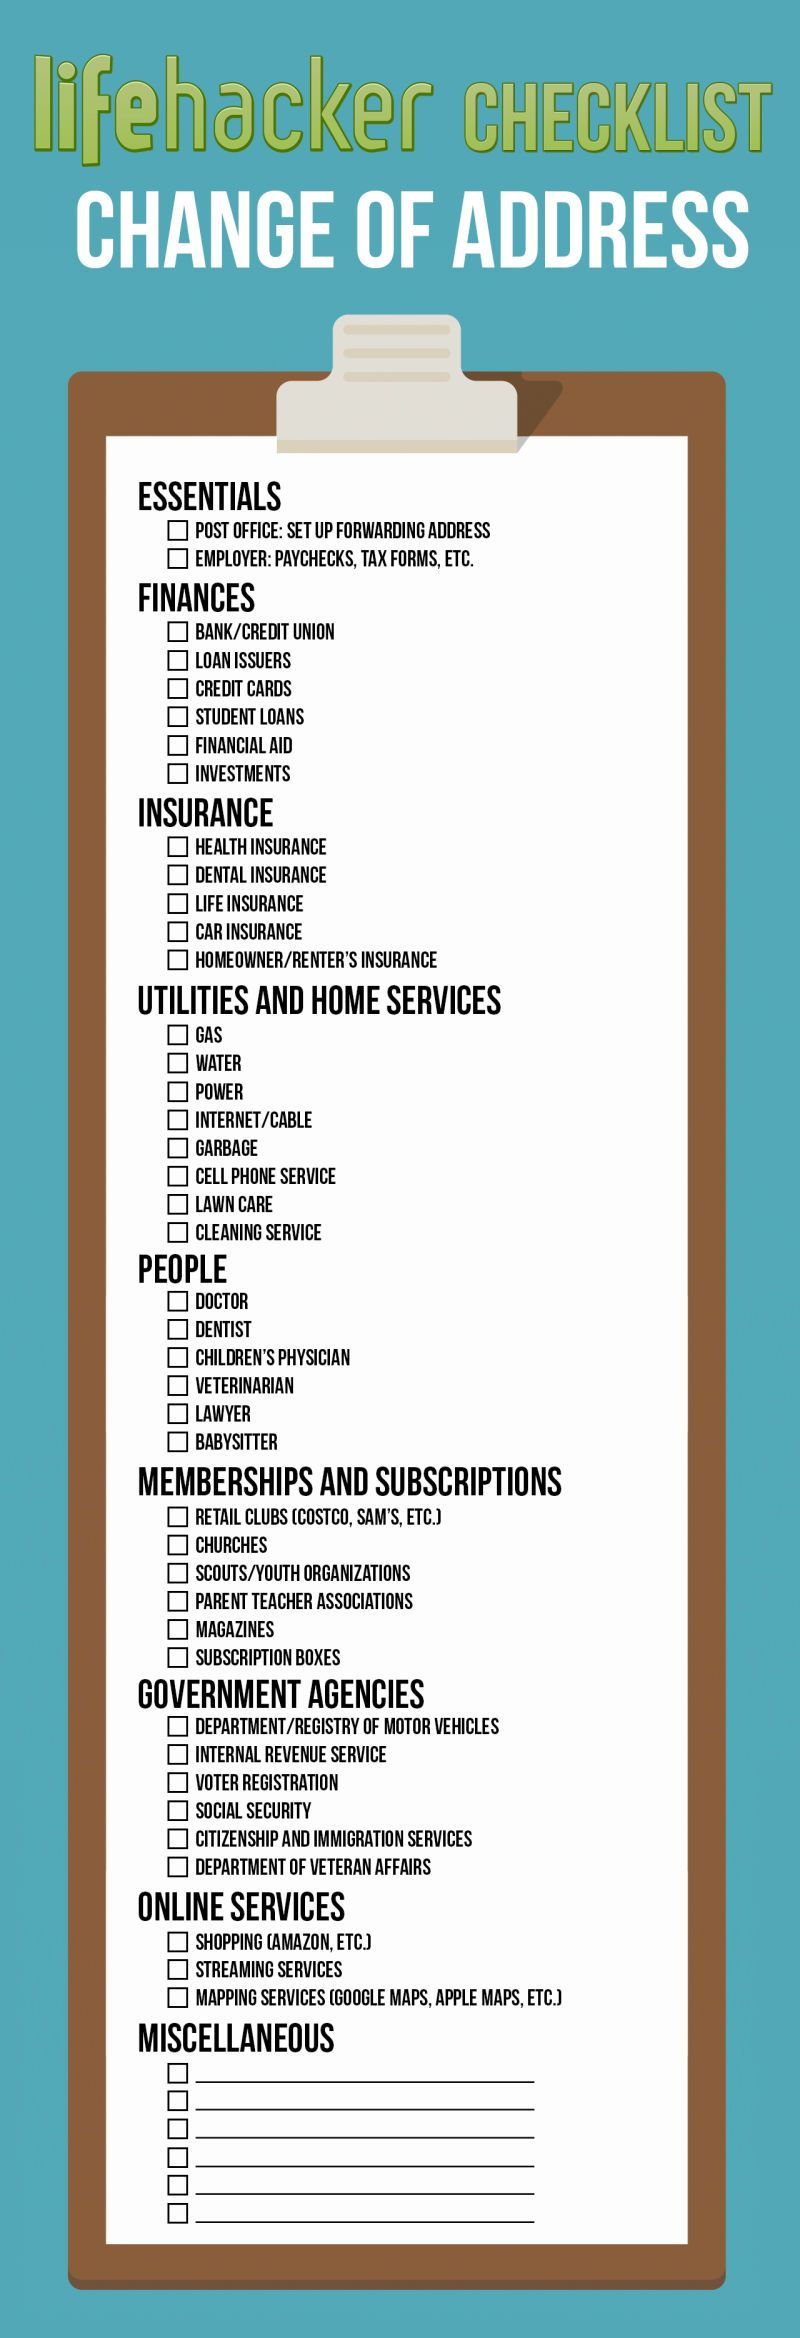 Change Your Address Everywhere On This Printable Checklist When ...